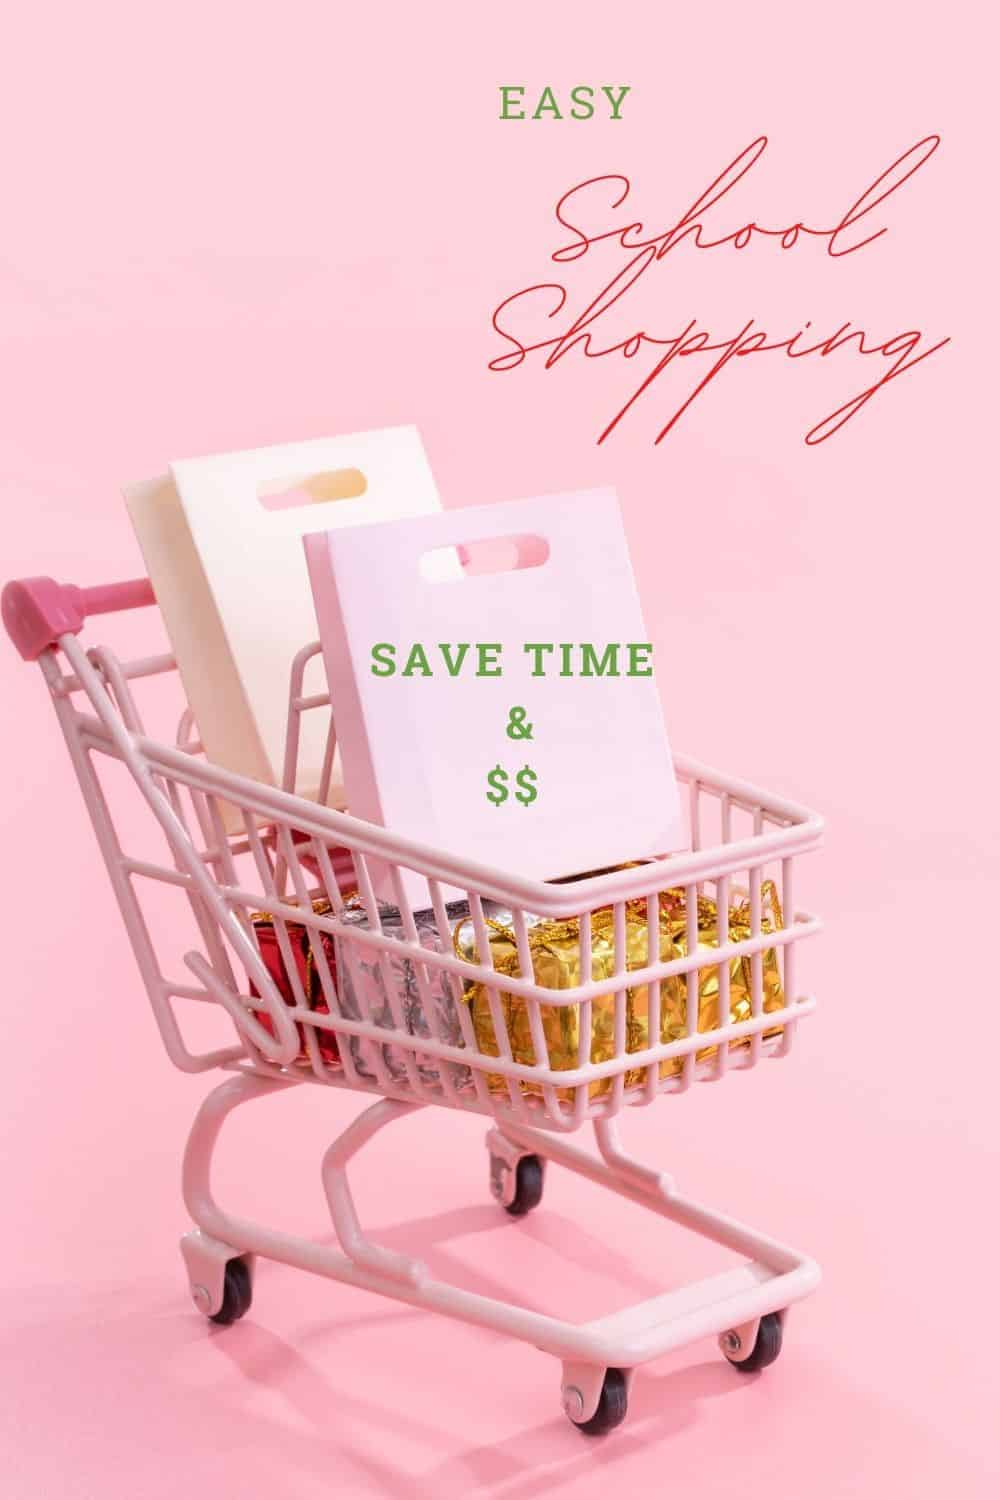 easy school shopping with cart